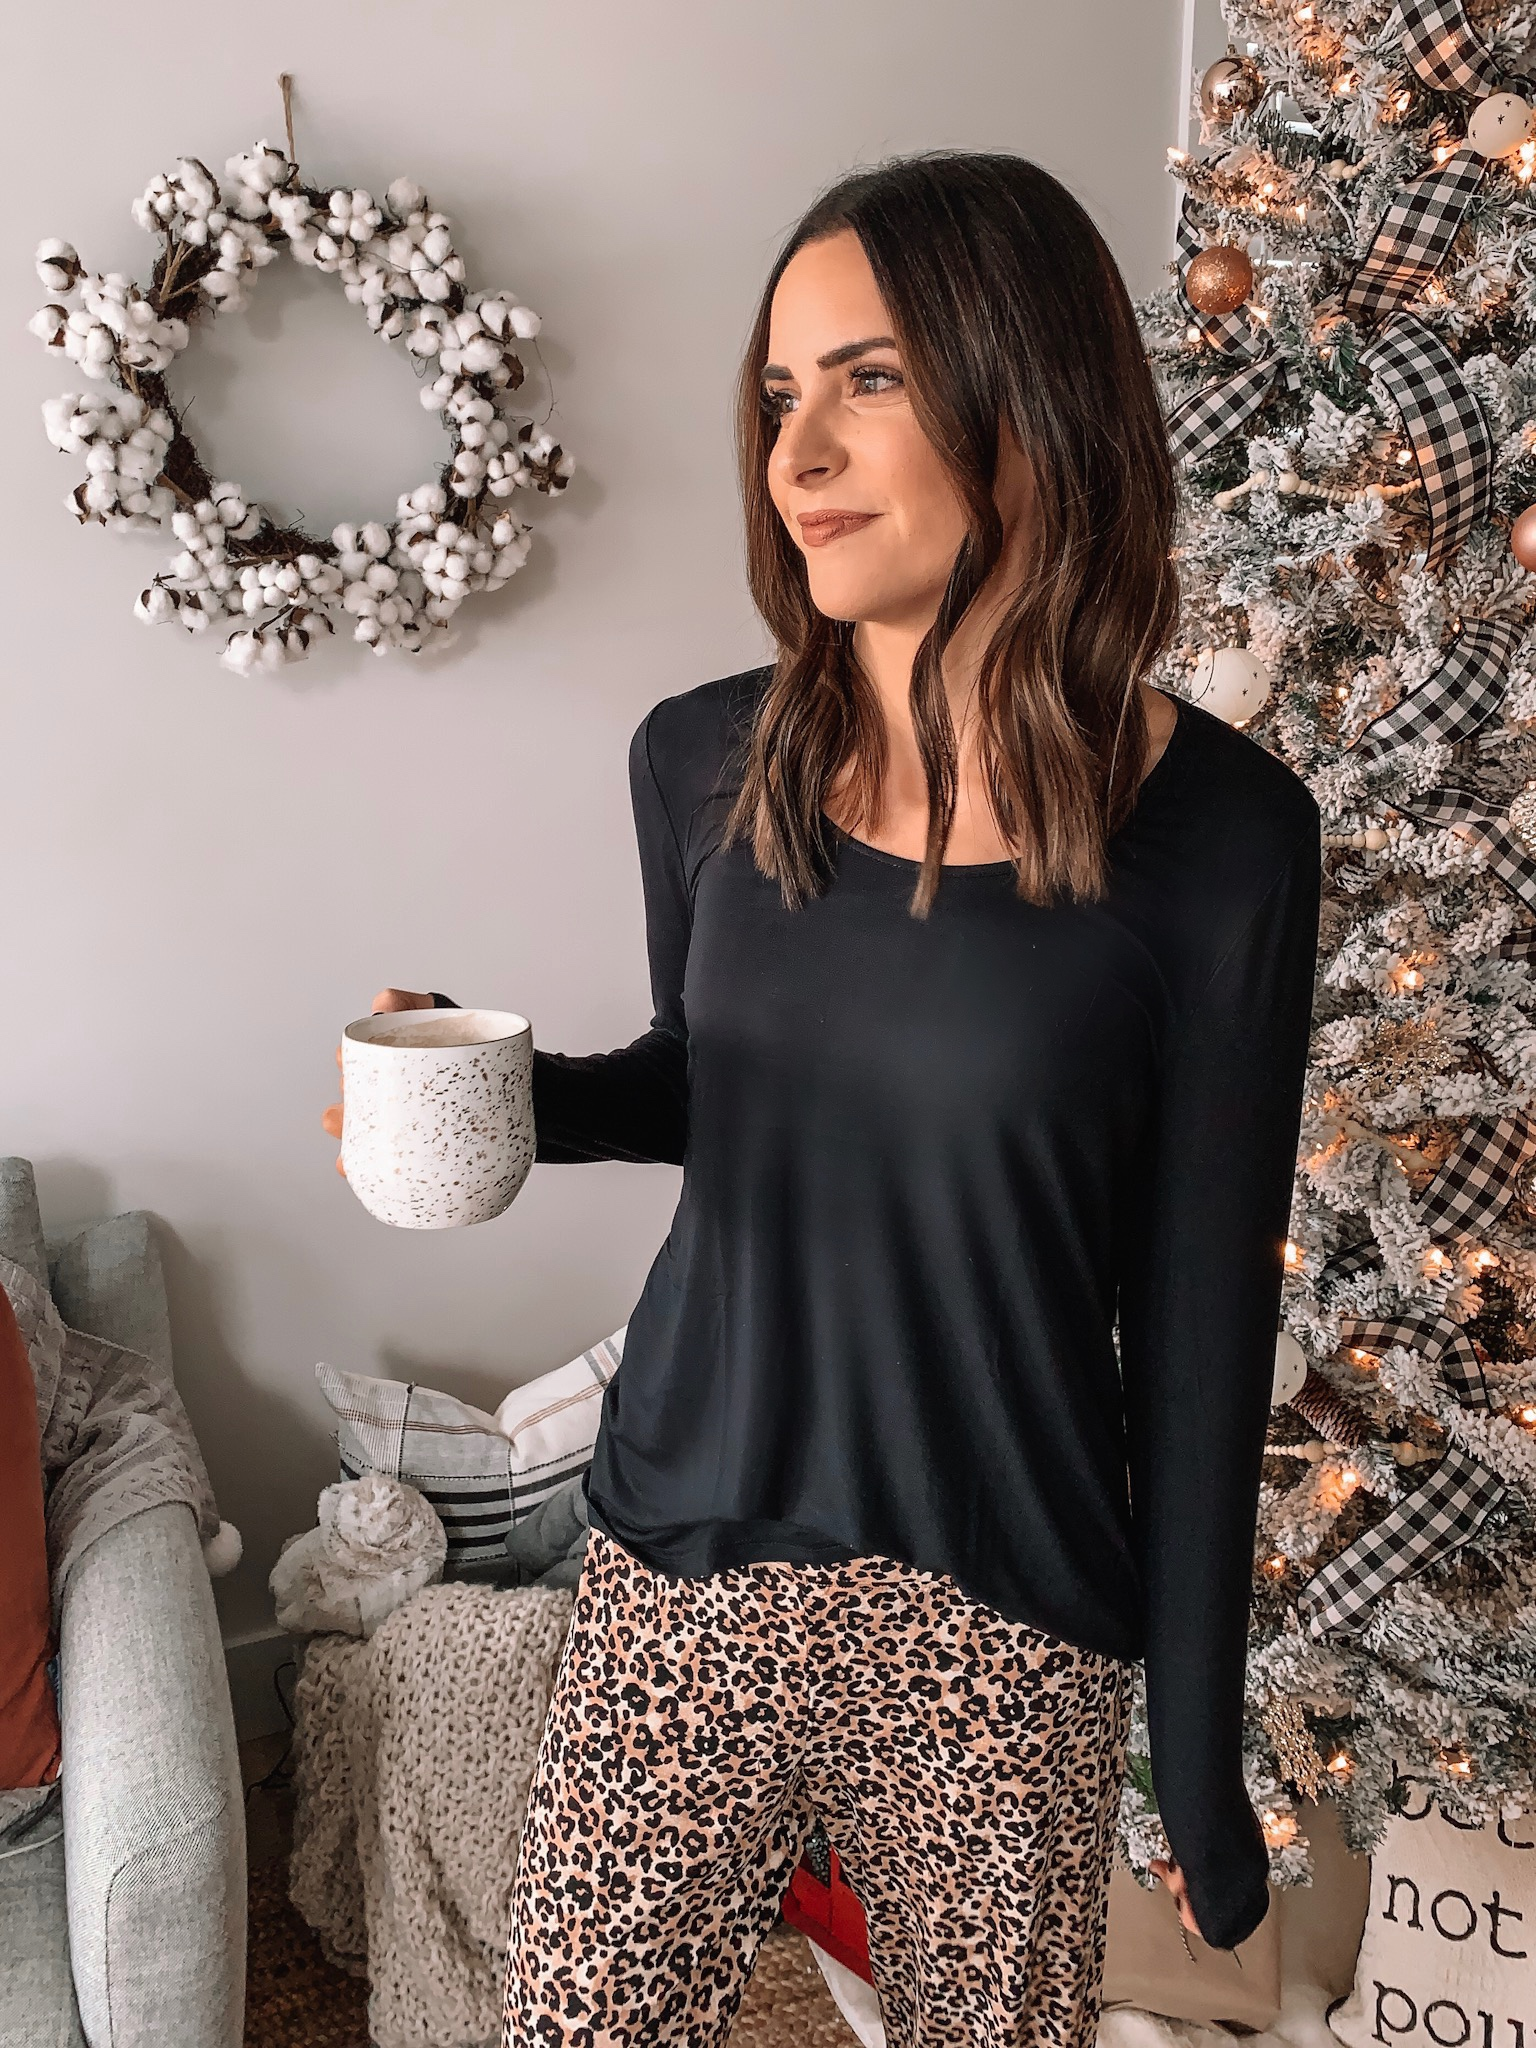 soma Black Friday sale, cool nights pjs leopard